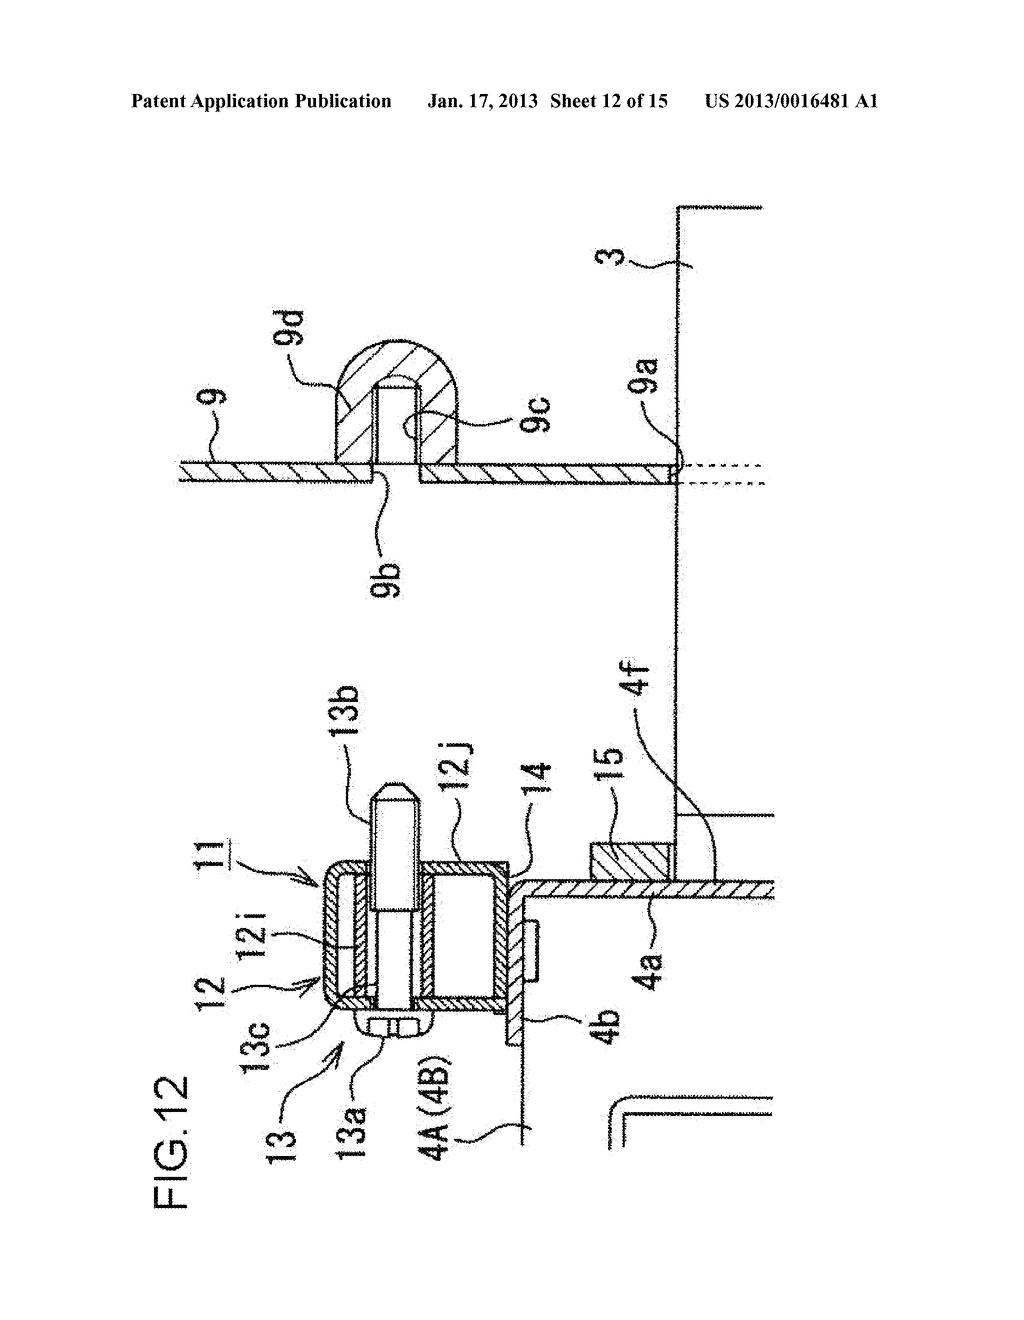 ELECTRIC POWER CONVERTER FOR ROLLING STOCKAANM TAKAHASHI; KiyoshiAACI Sagamihara-cityAACO JPAAGP TAKAHASHI; Kiyoshi Sagamihara-city JP - diagram, schematic, and image 13